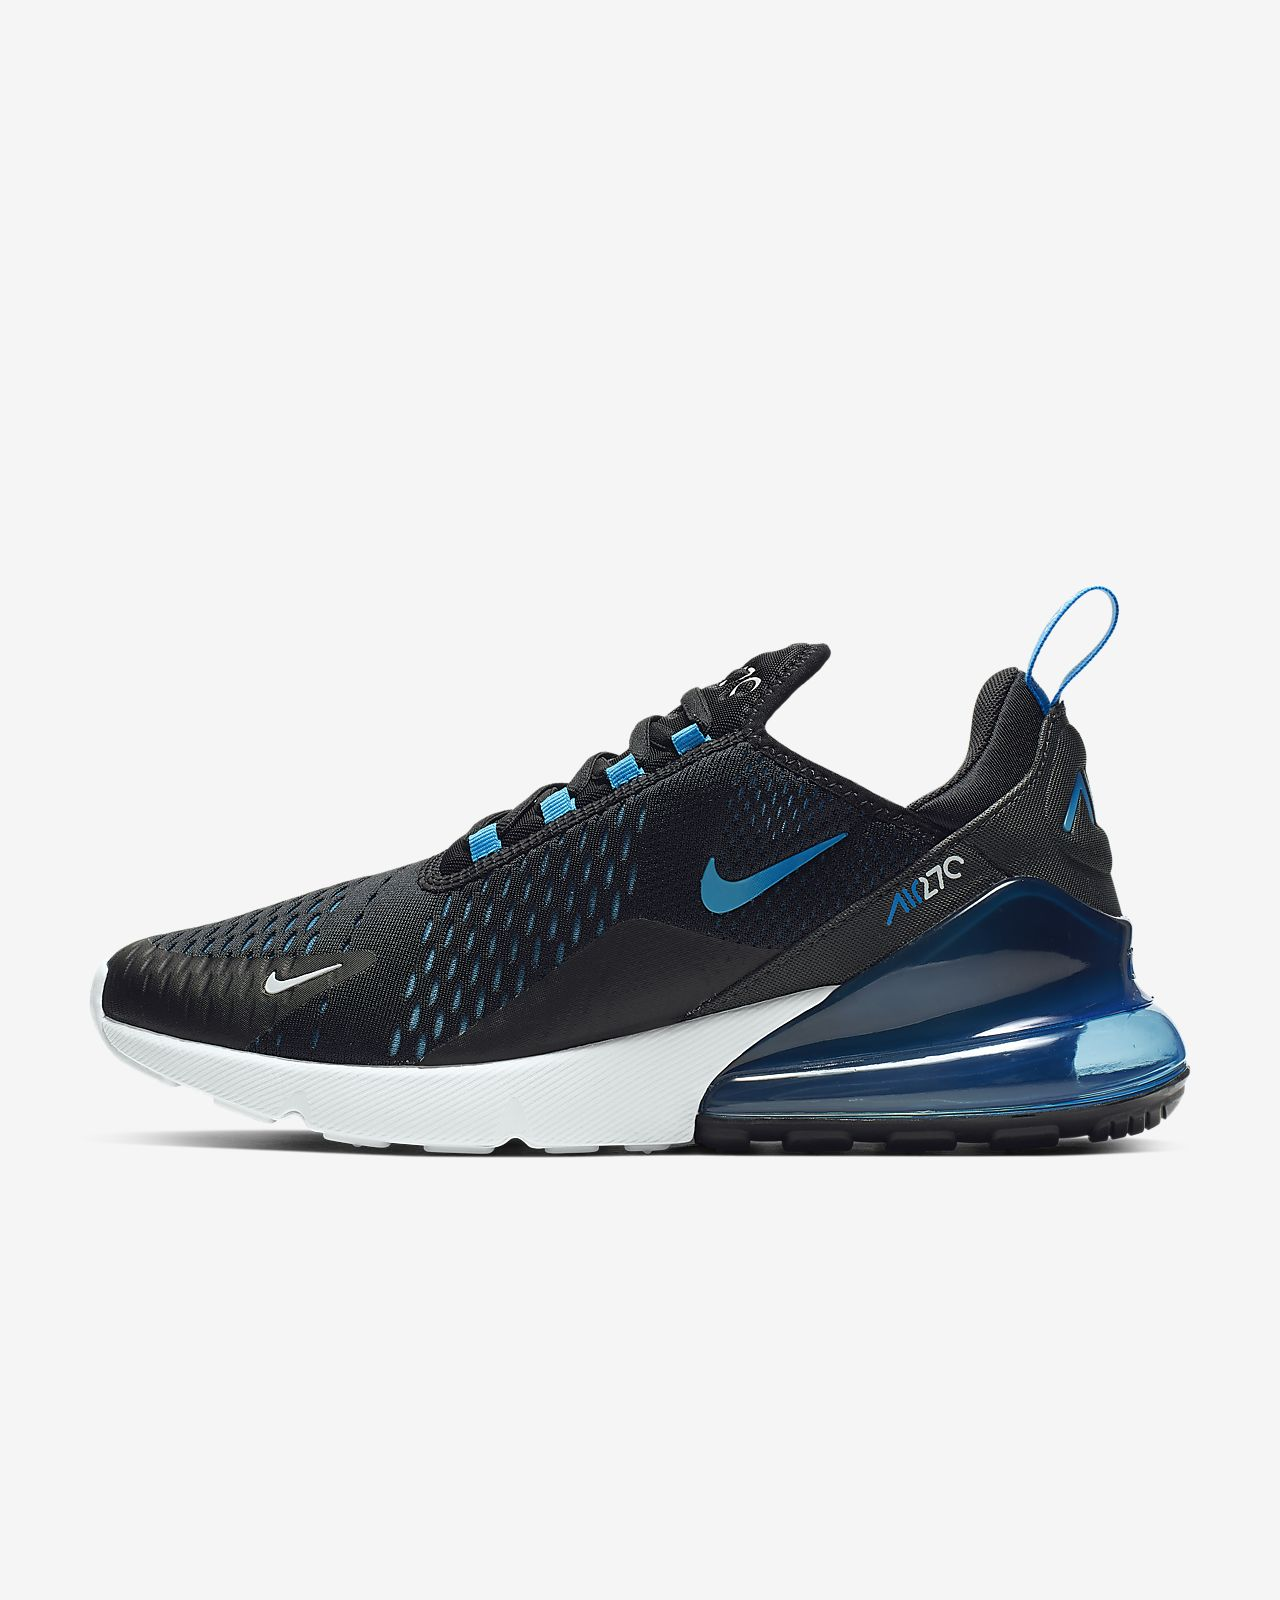 meet 31f7c c2c8c Men s Shoe. Nike Air Max 270